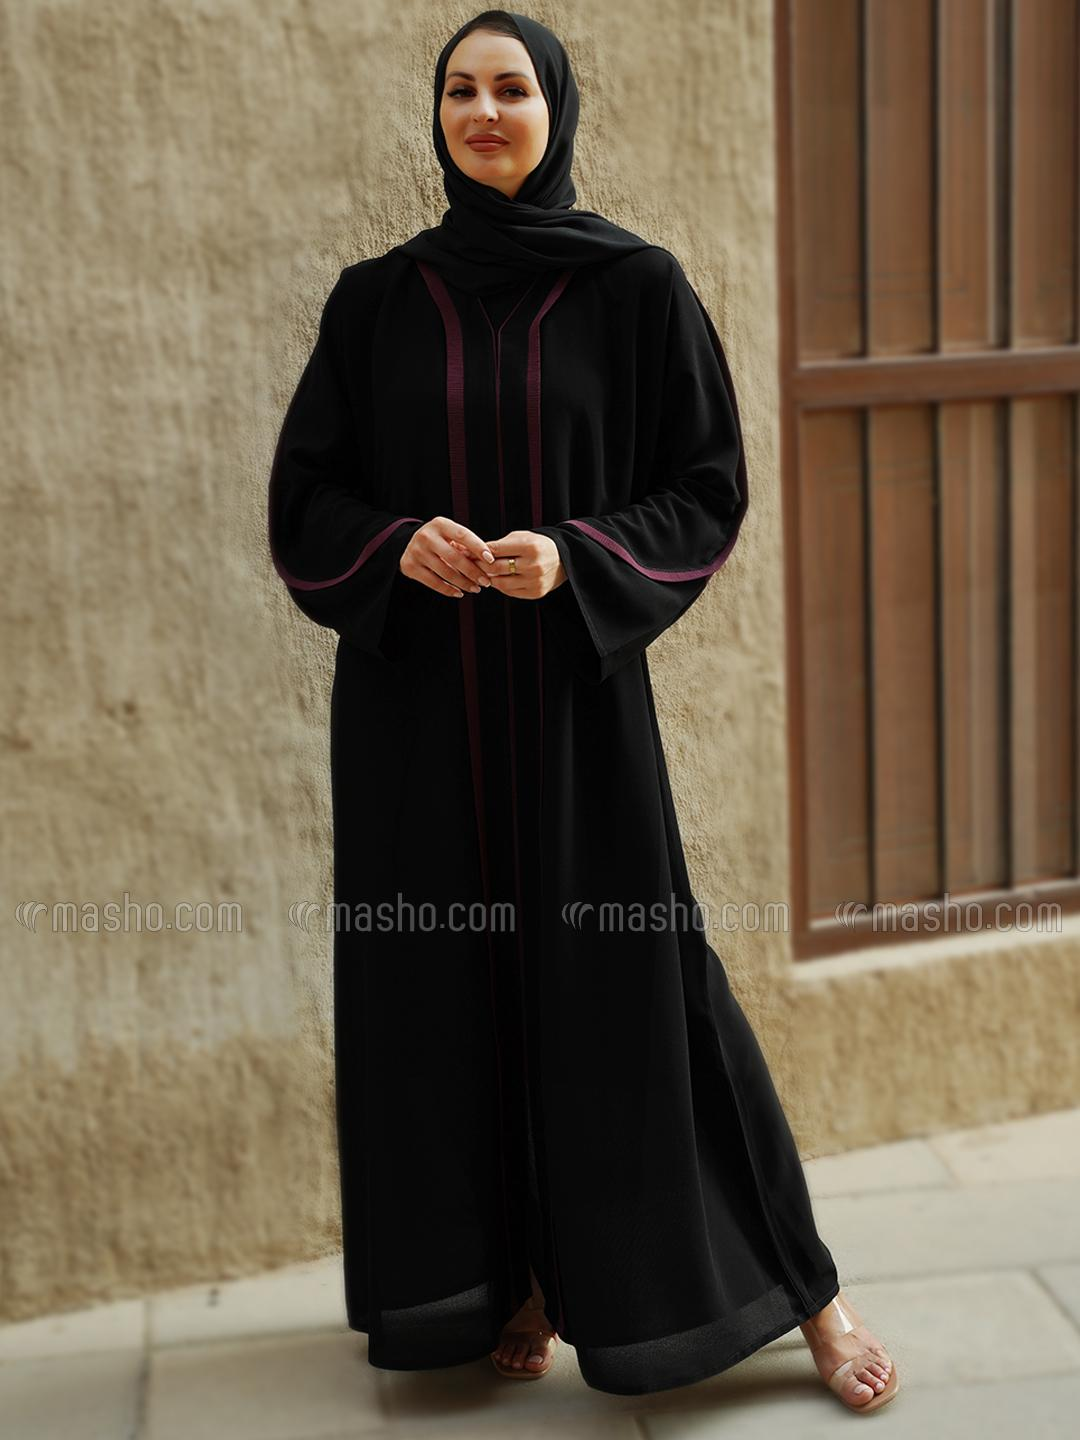 Korean Masha Crepe Simple Free Size Abaya With Pink Piping And Line Work On Front And Sleeve In Blac